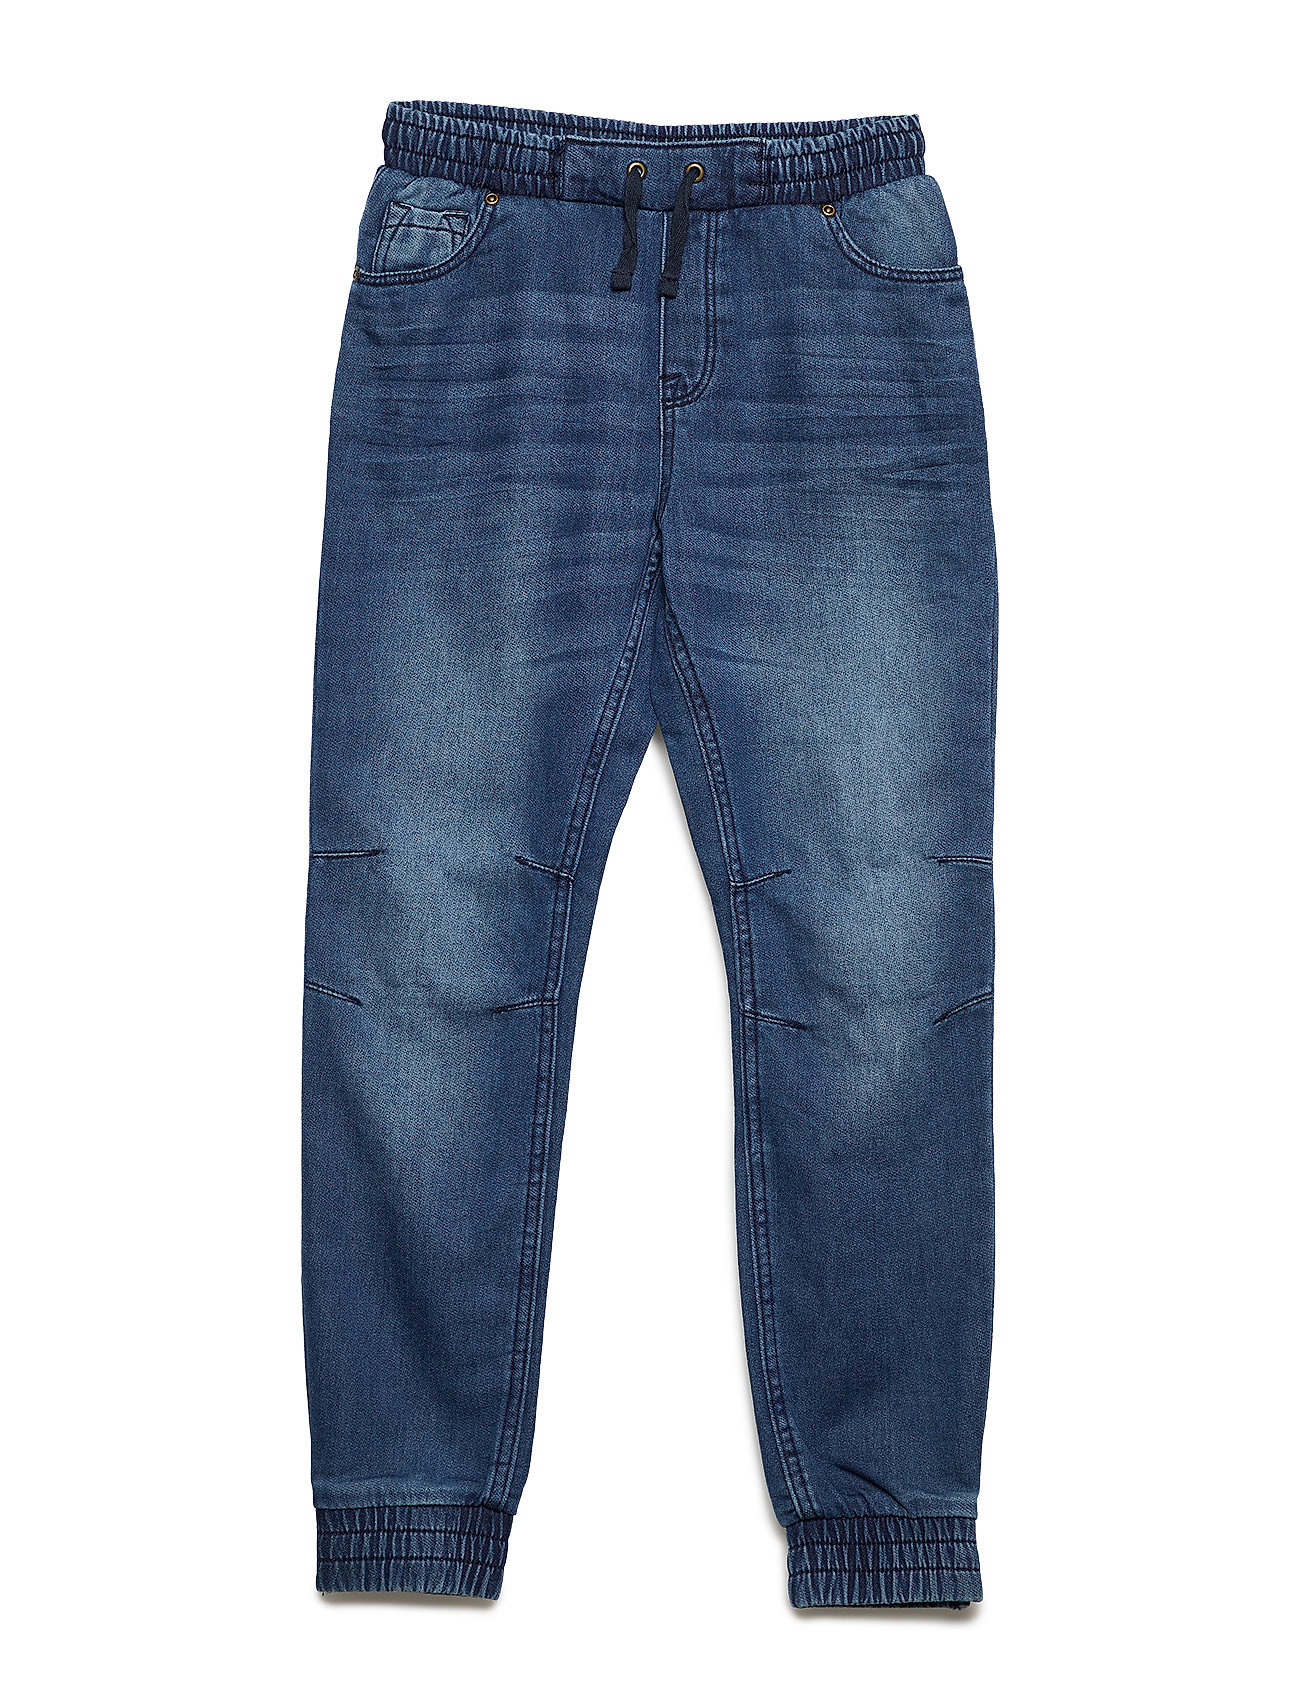 Polarn O. Pyret Trouser Woven School - BLUE DENIM